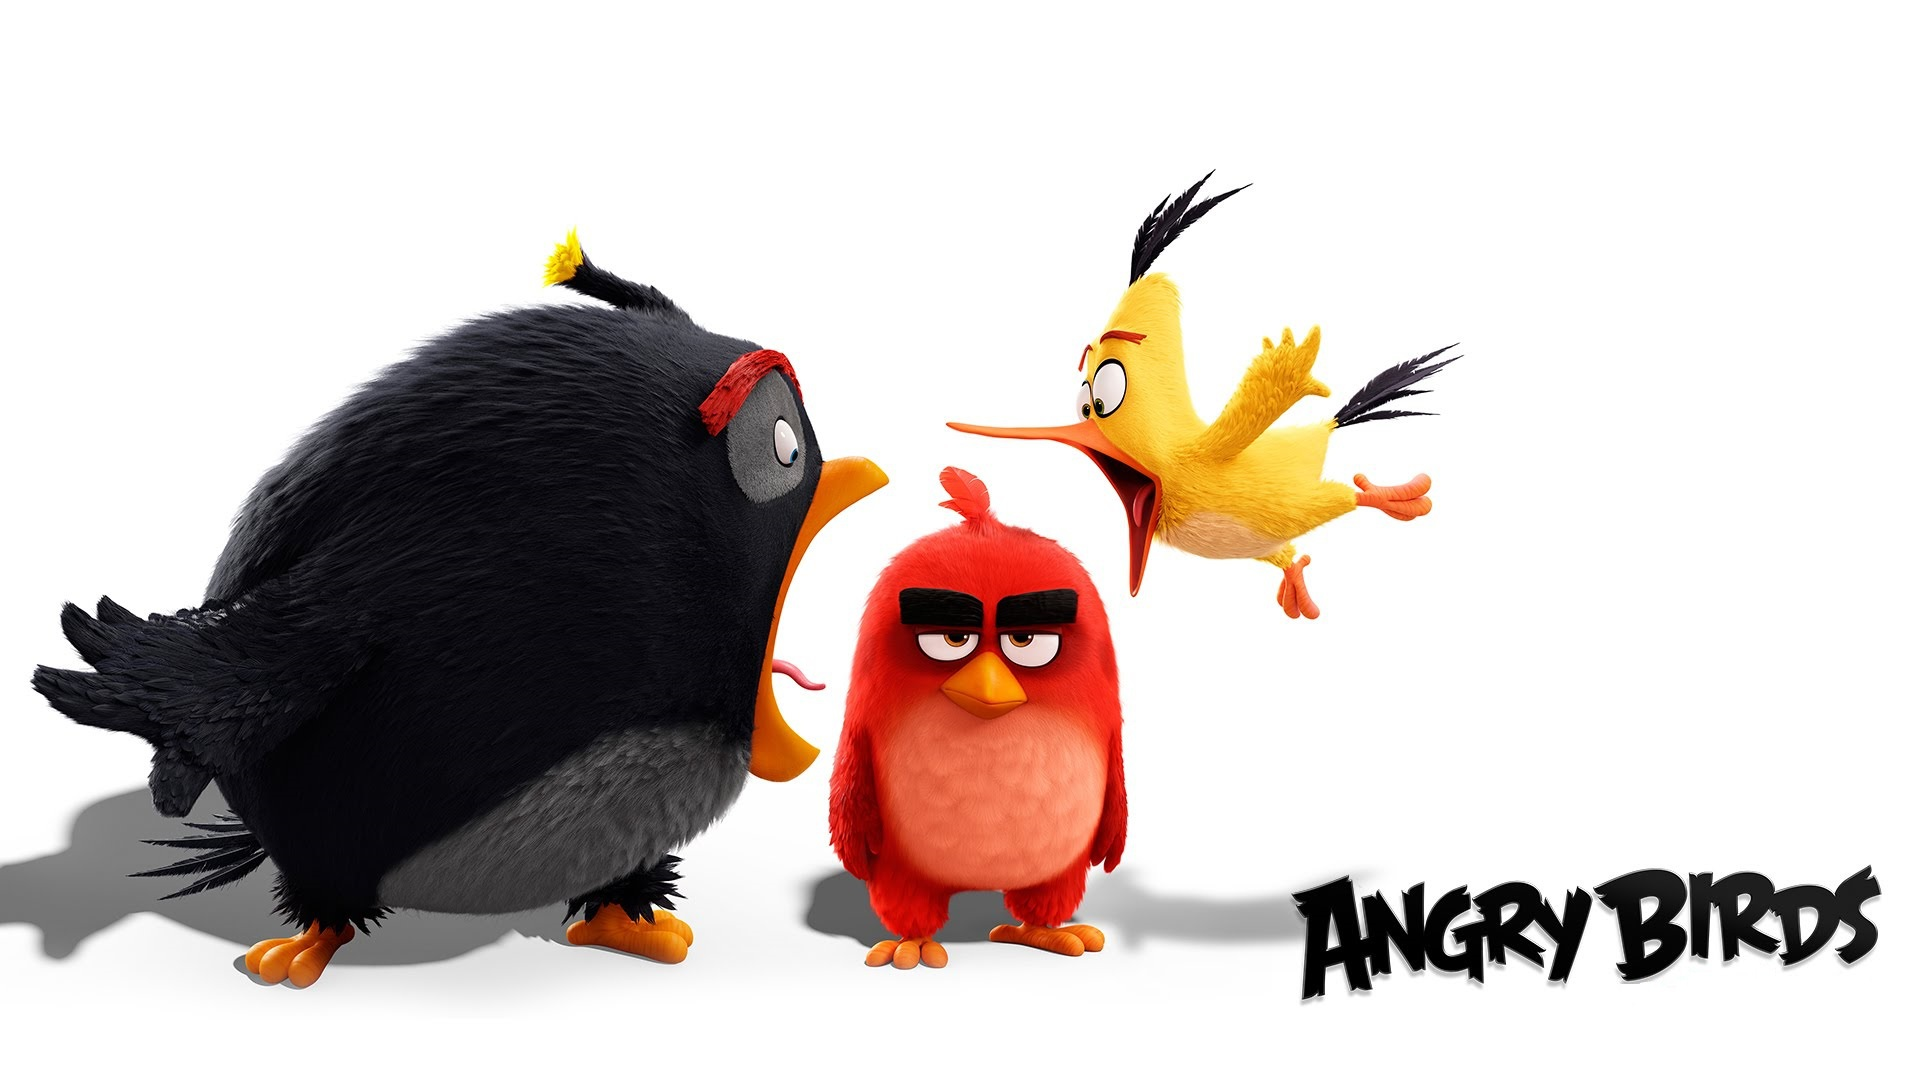 angry birds hd images | newwallpapers